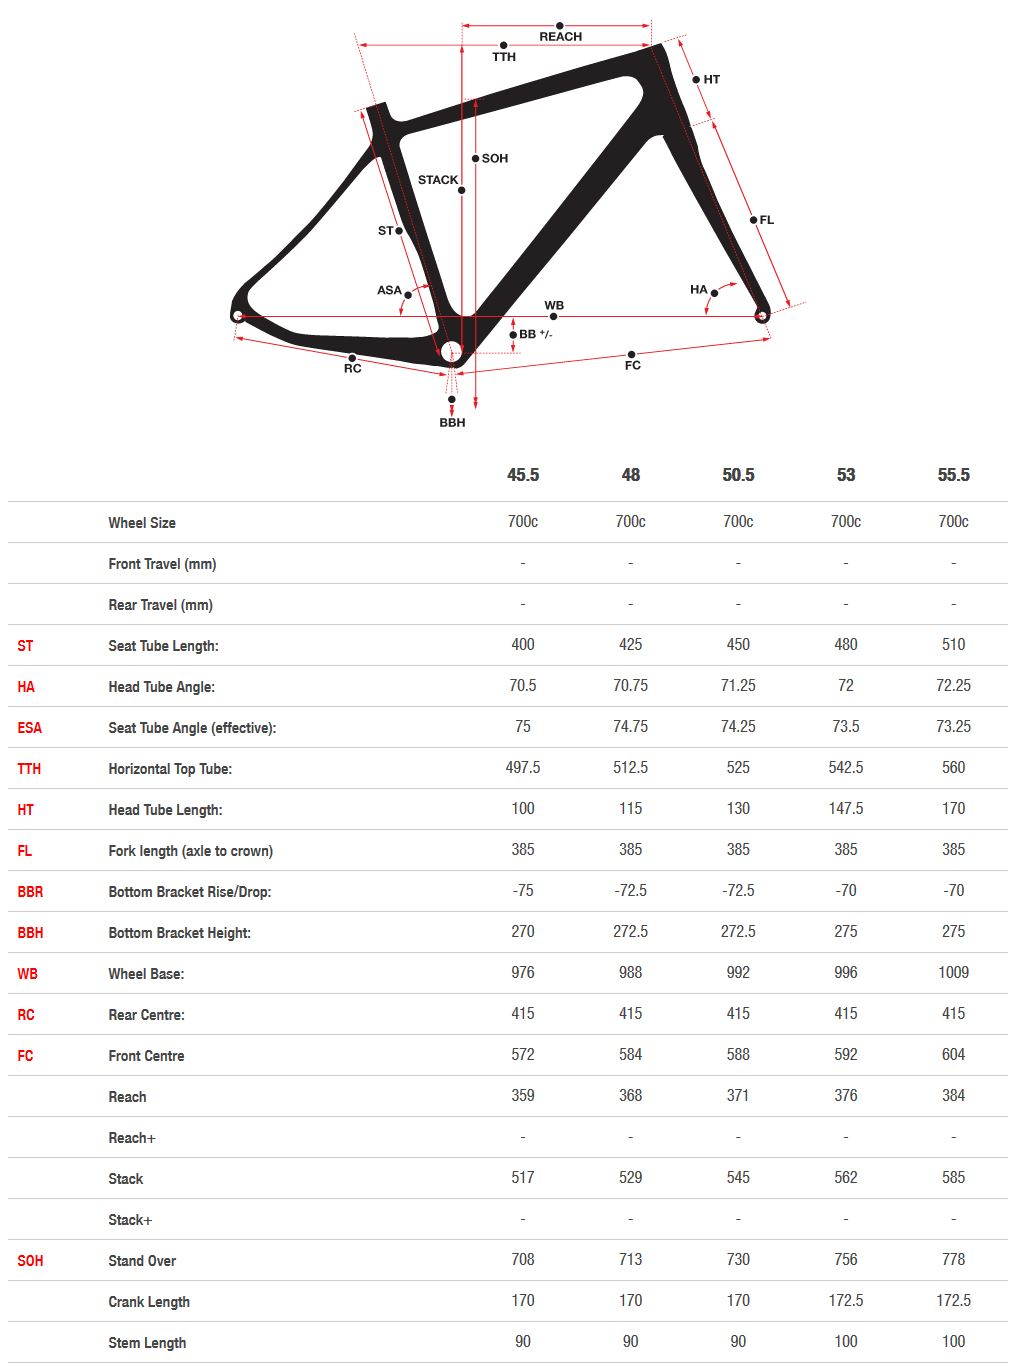 Norco Valence Women's geometry chart